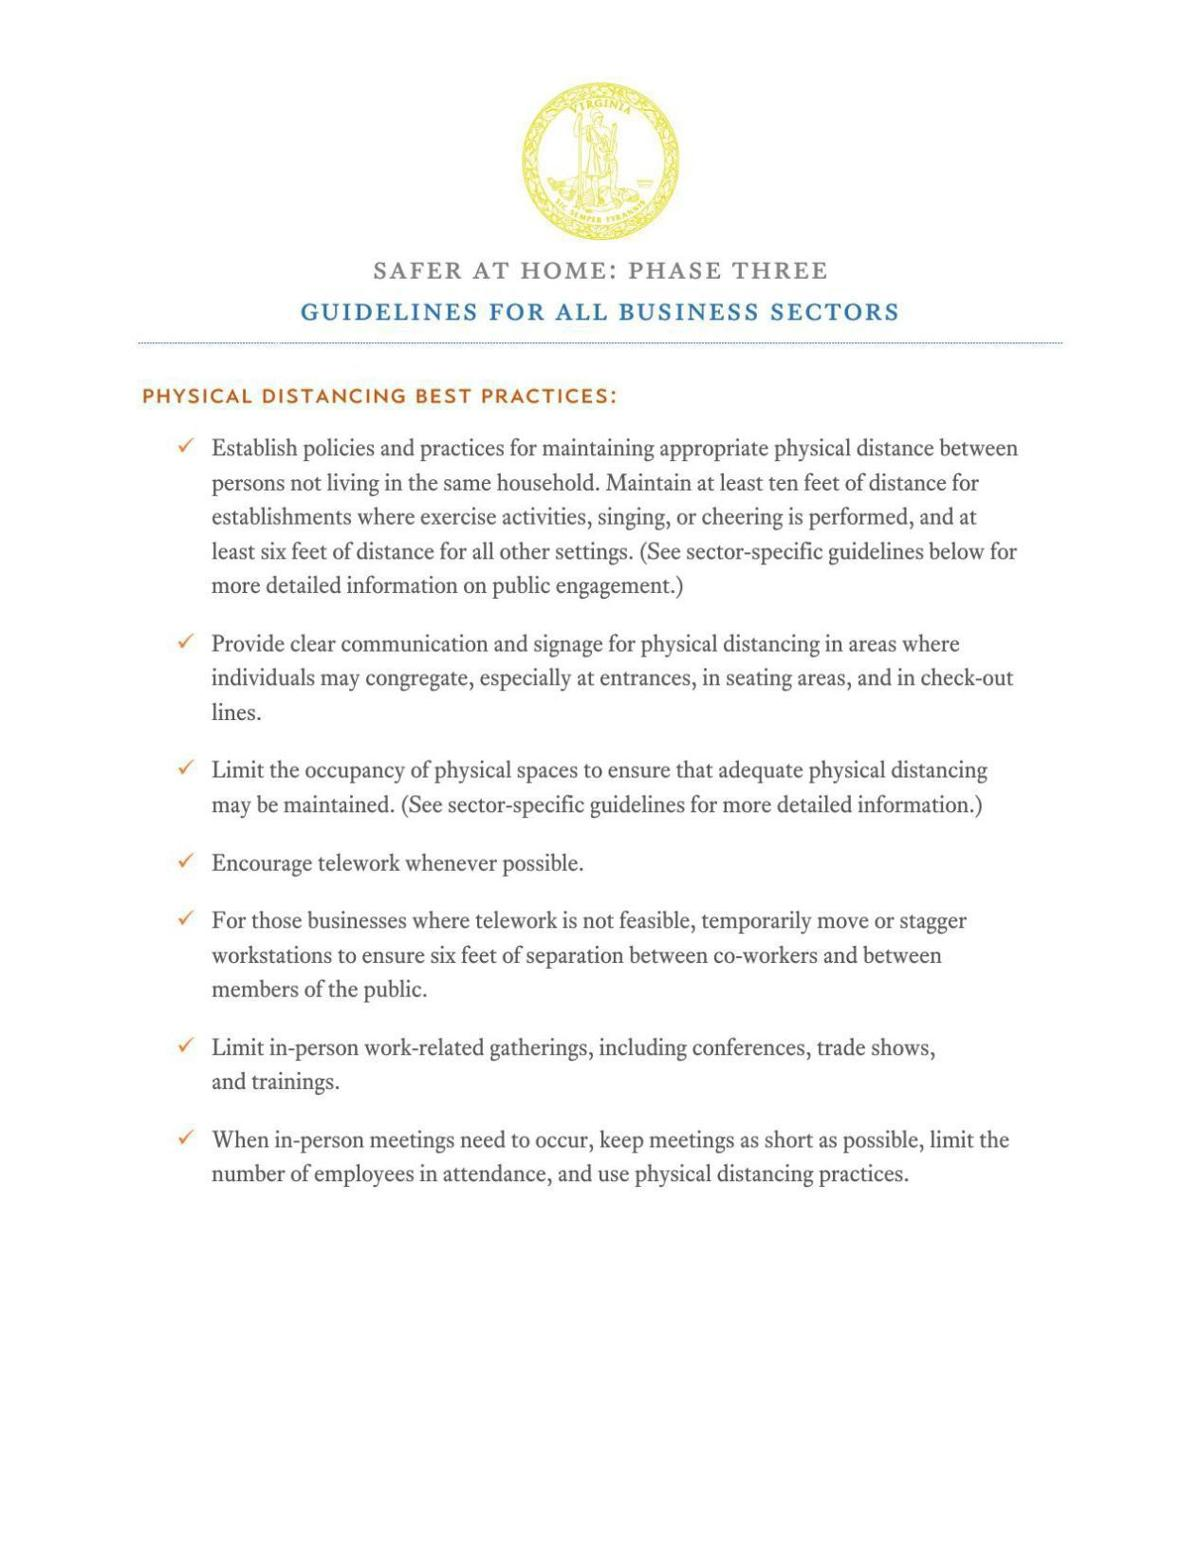 Virginia Phase Three Guidelines